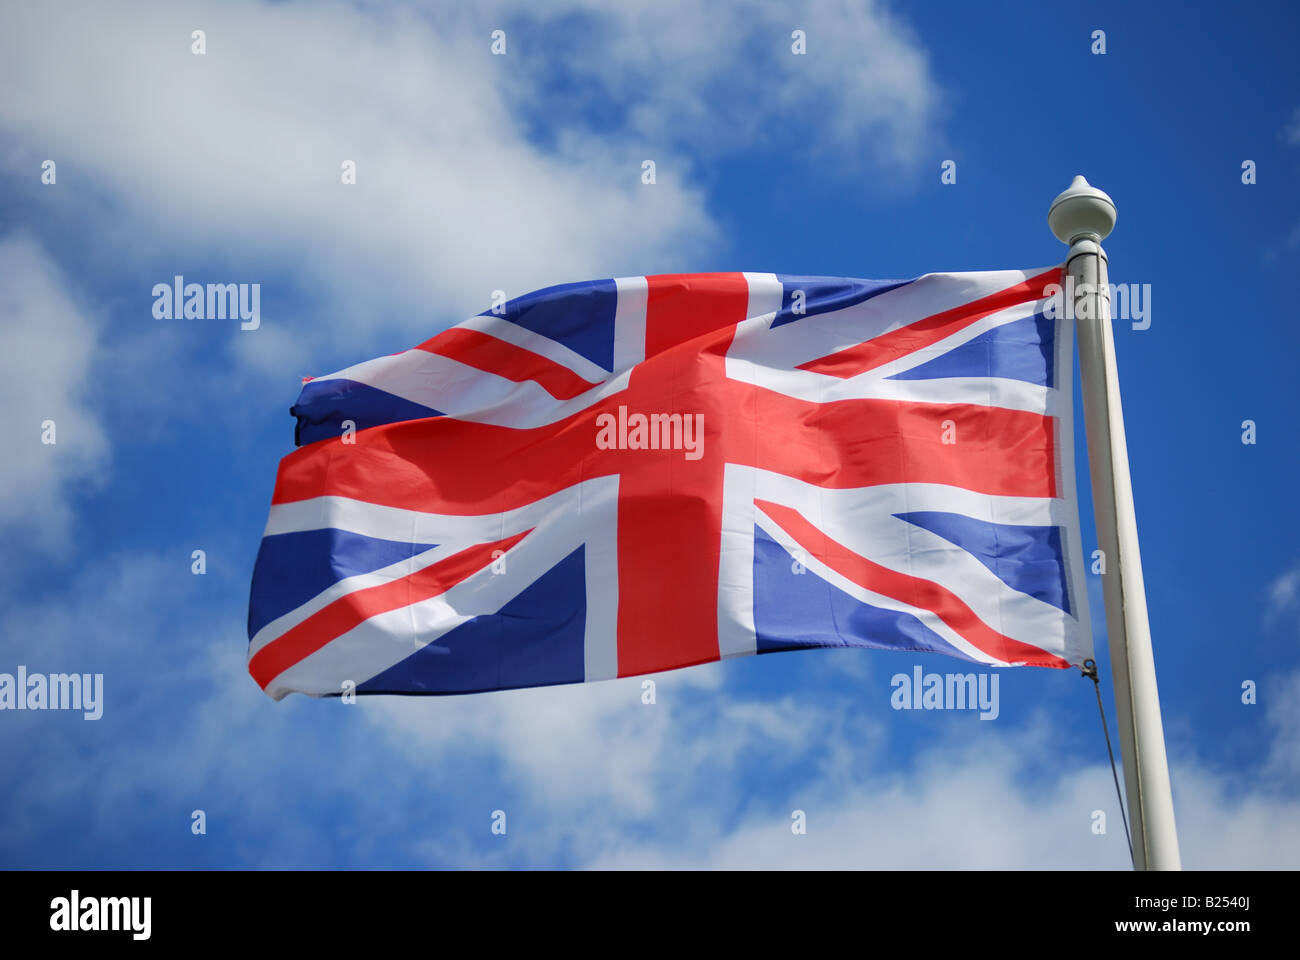 Union Jack flying on flagpole, Westminster, London, England, United Kingdom - Stock Image